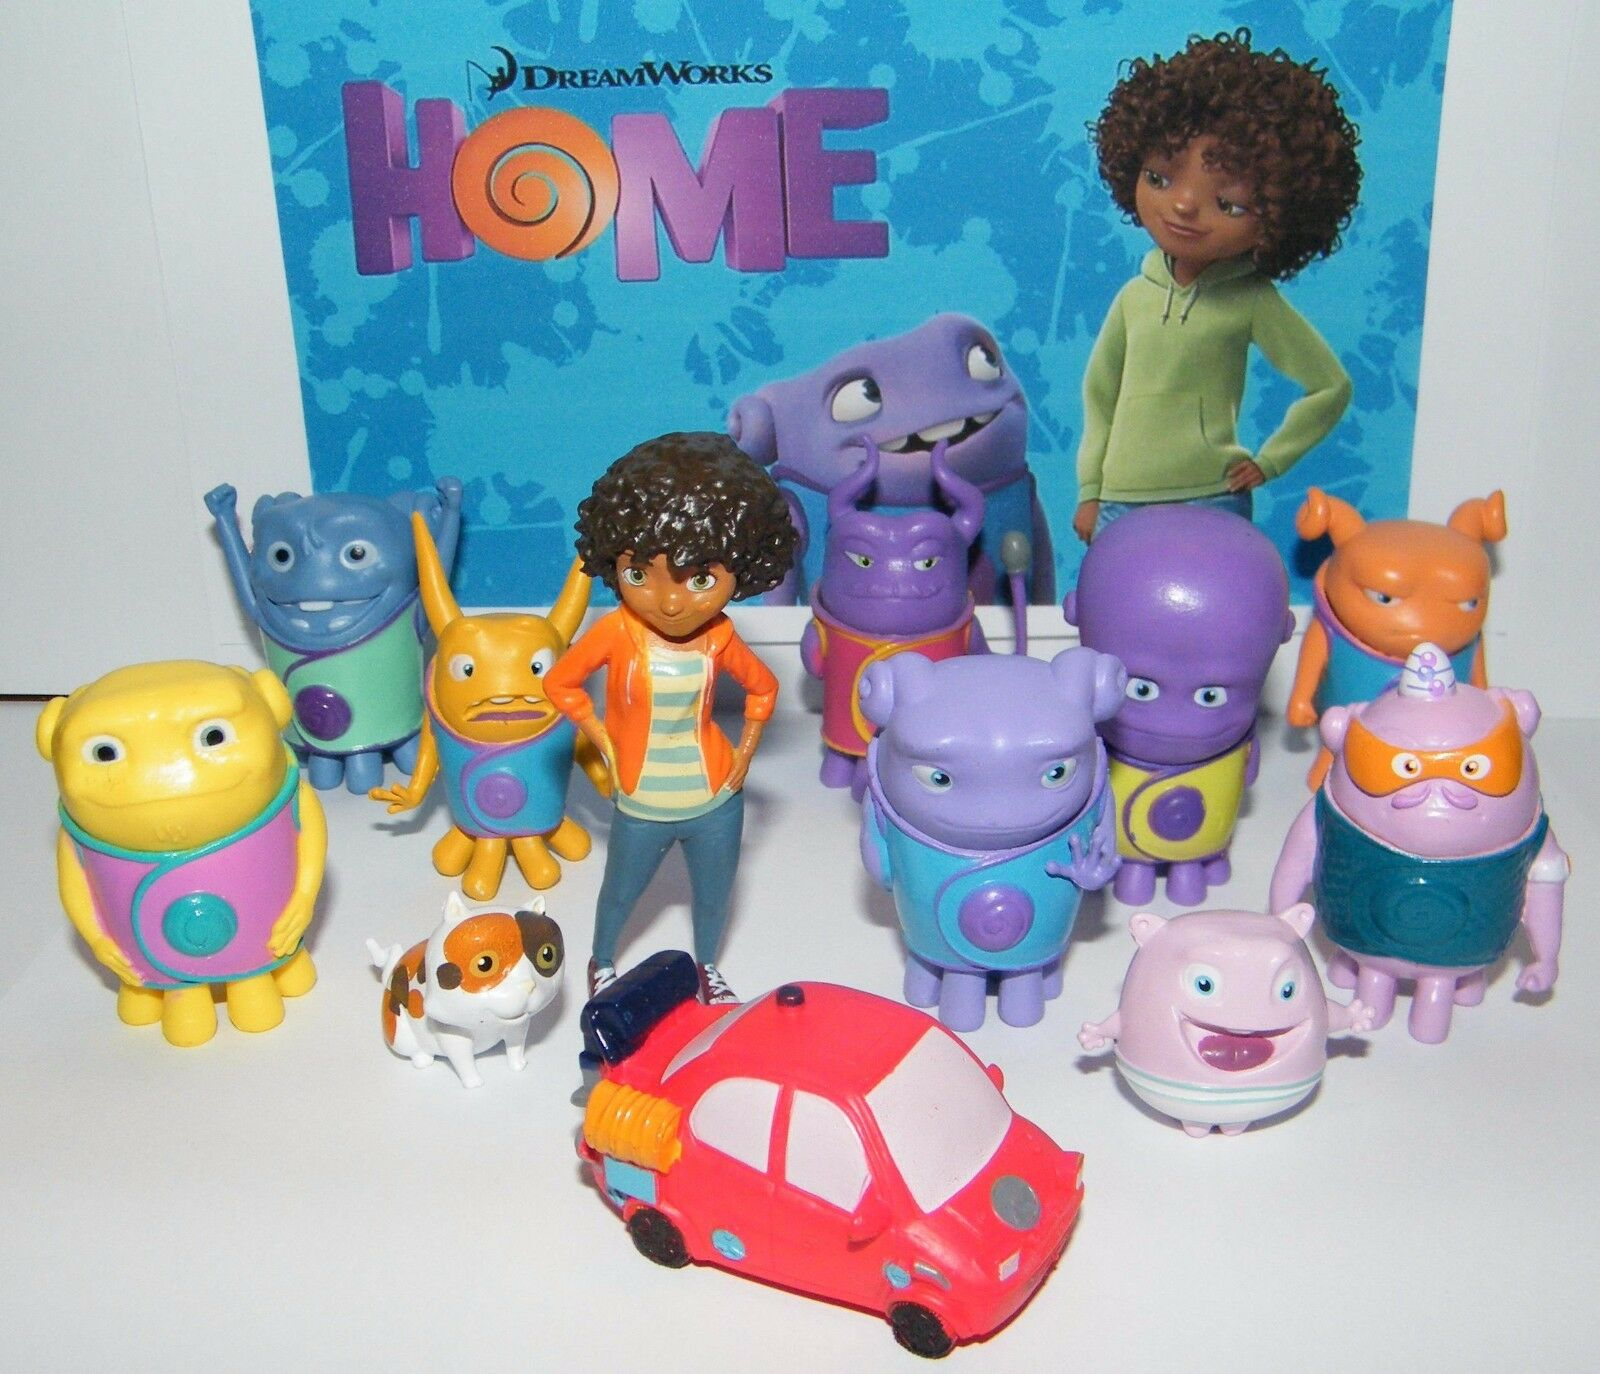 Dreamworks Home Movie Party Favors set of 13 with Kyle, Pig,